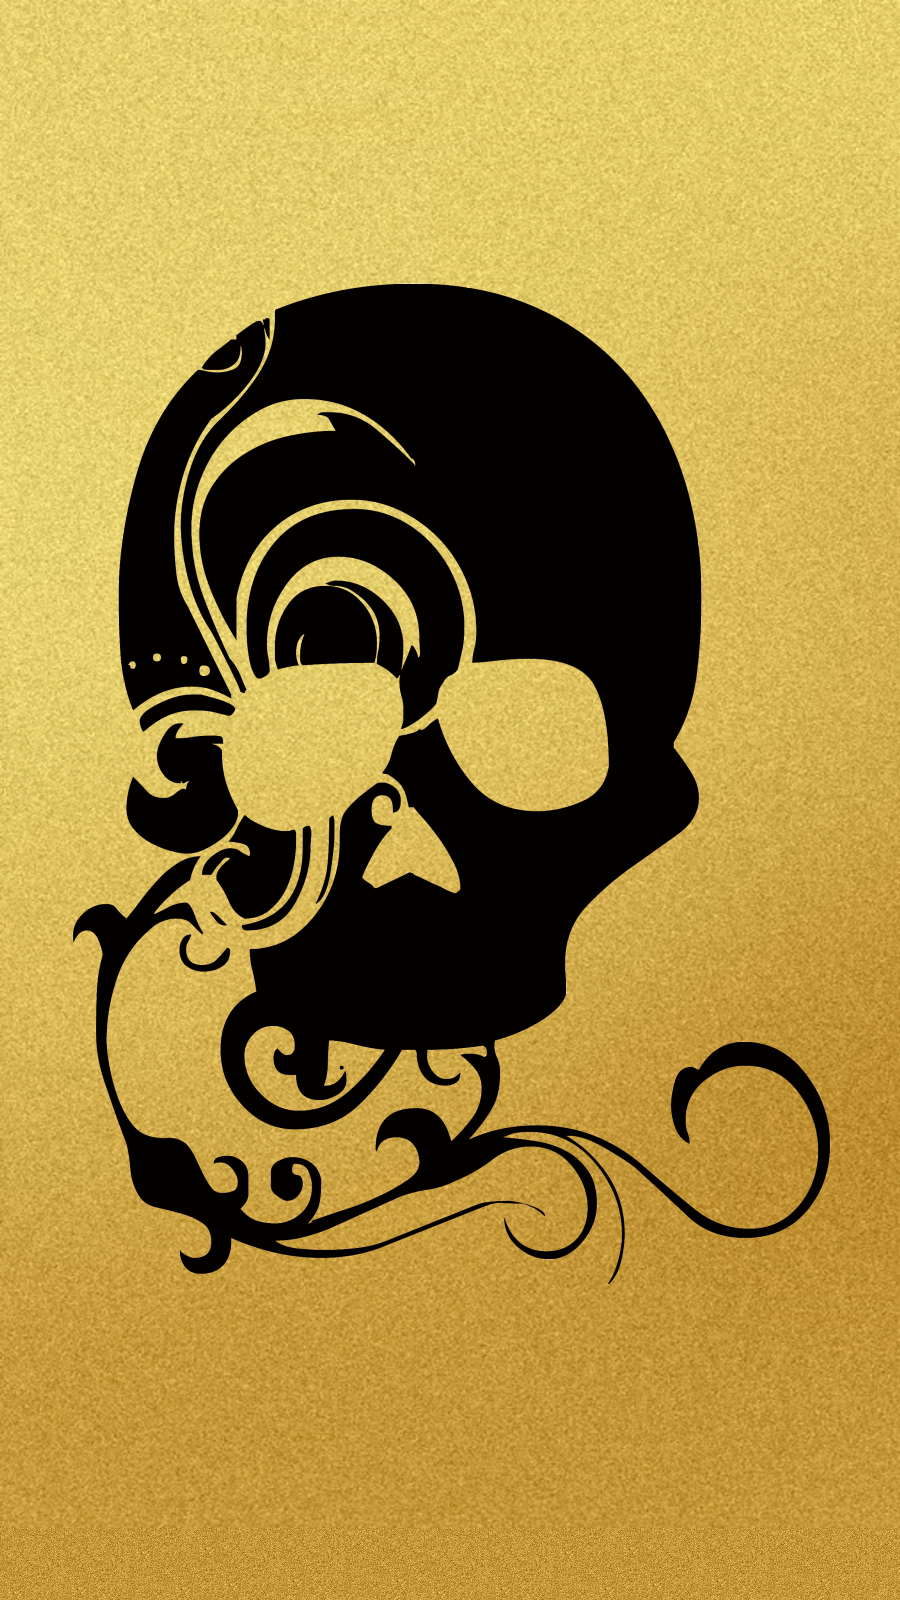 Beautiful Wallpaper Halloween Gold - 4c618fa49dea000633305b9d8fd4a371  Picture_458945.png